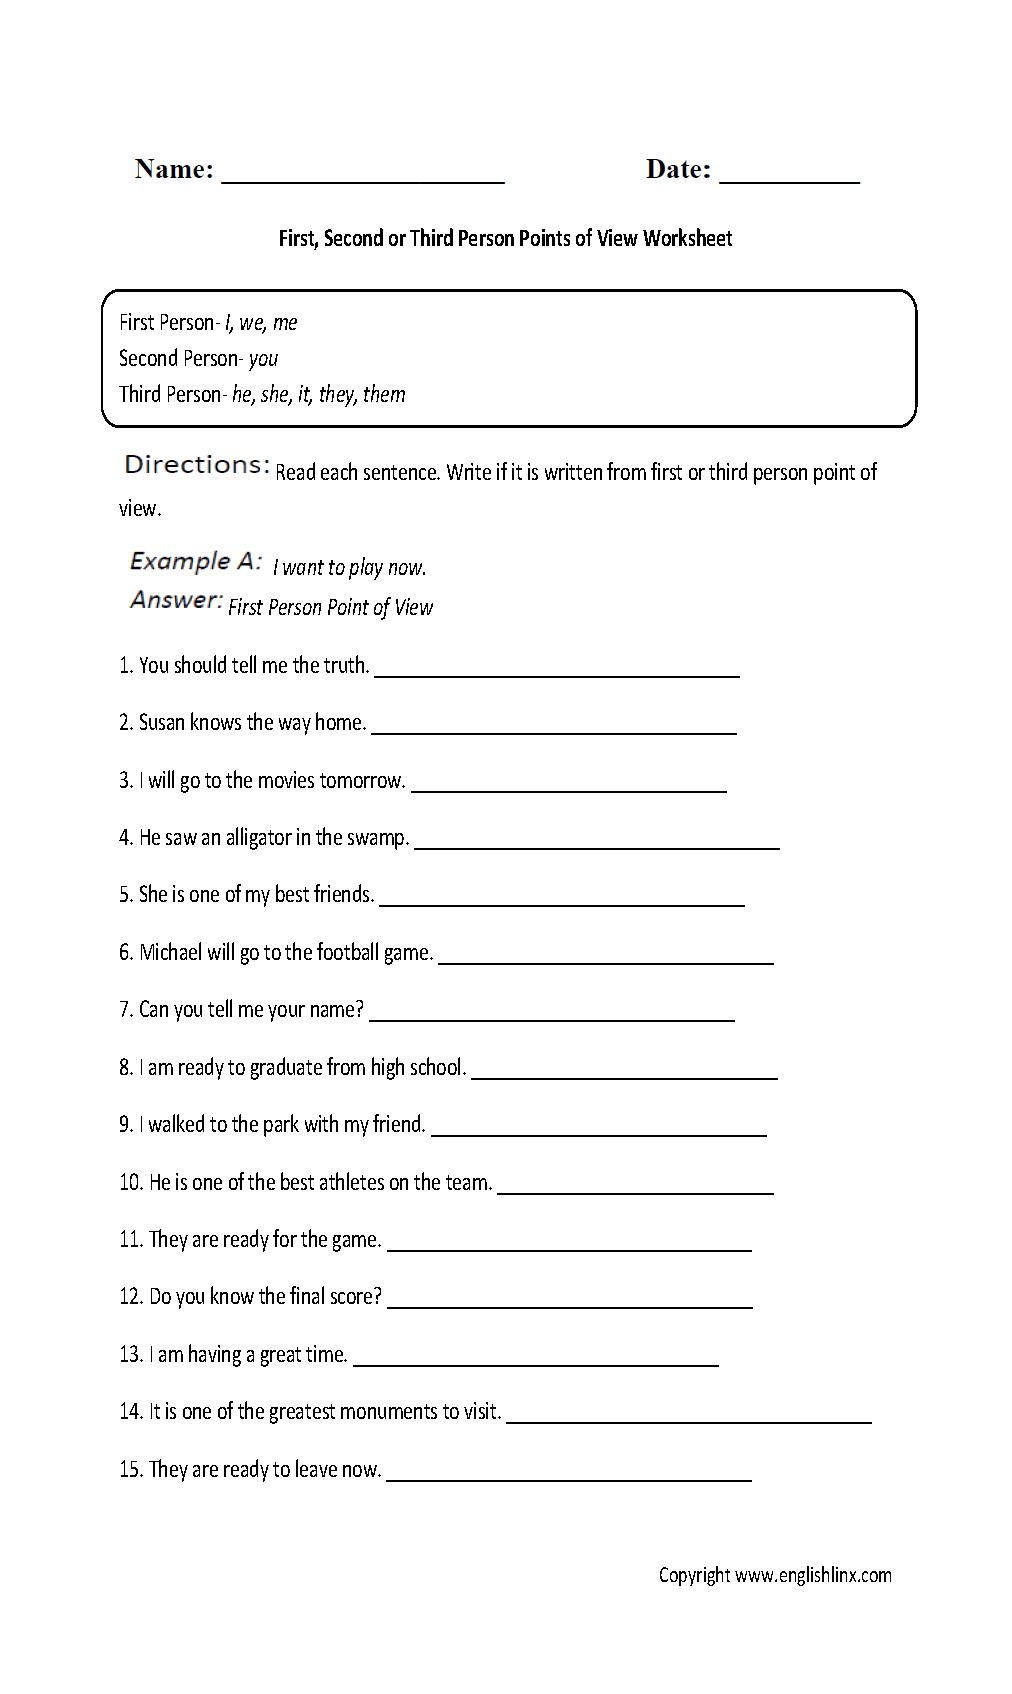 Worksheets Point Of View Worksheets 3rd Grade englishlinx com point of view worksheets worksheet